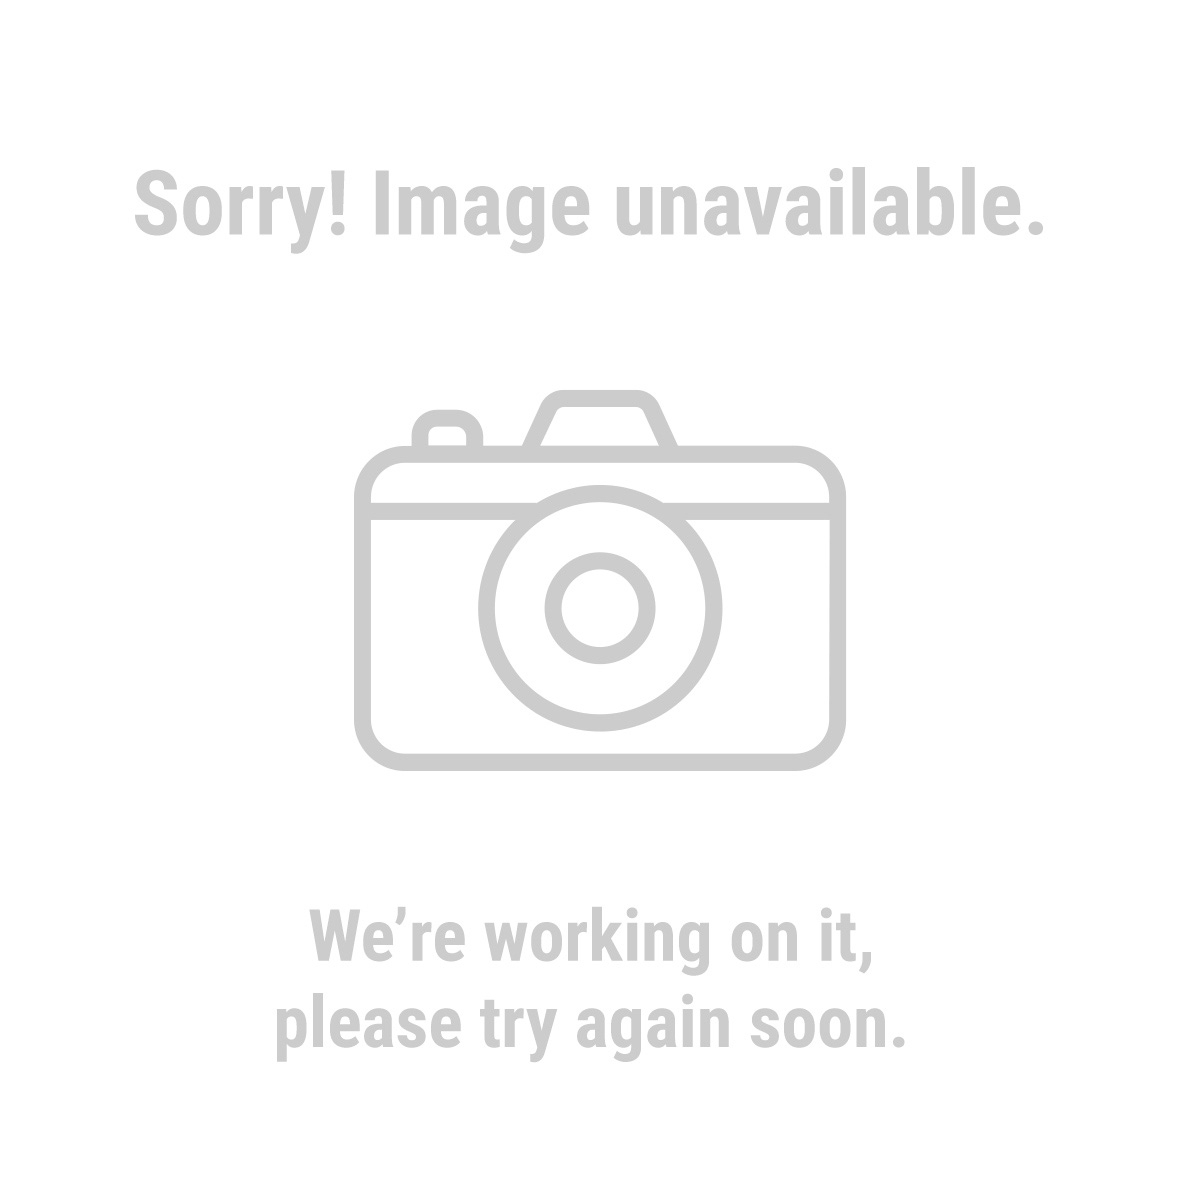 Pittsburgh Motorcycle 98488 Motorcycle Wheel Balancing Stand